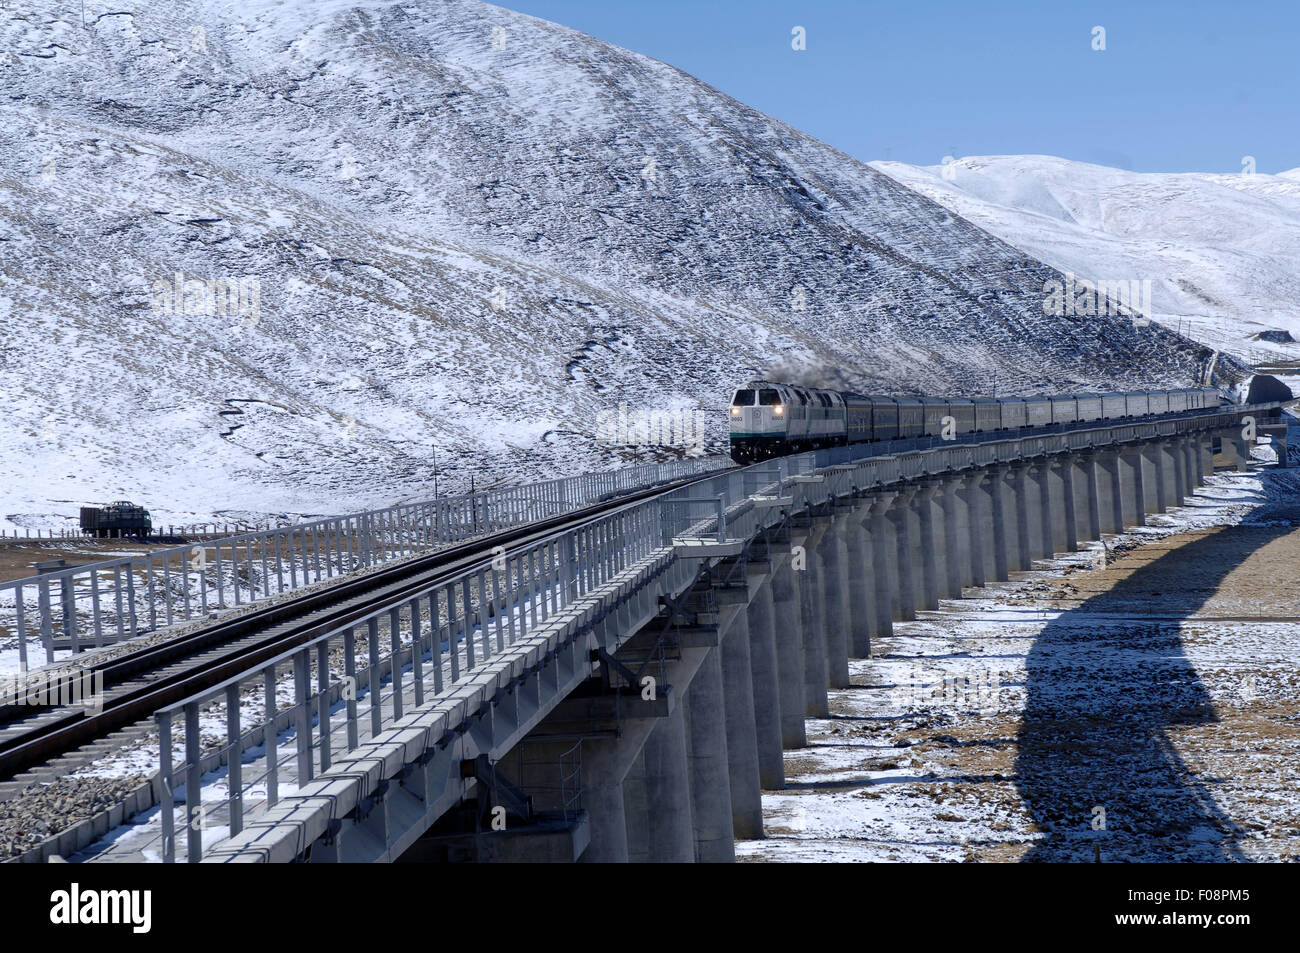 (150810) -- LHASA, Aug. 10, 2015 (Xinhua) -- Photo taken on Oct. 25, 2006 shows a train running on the plateau in - Stock Image